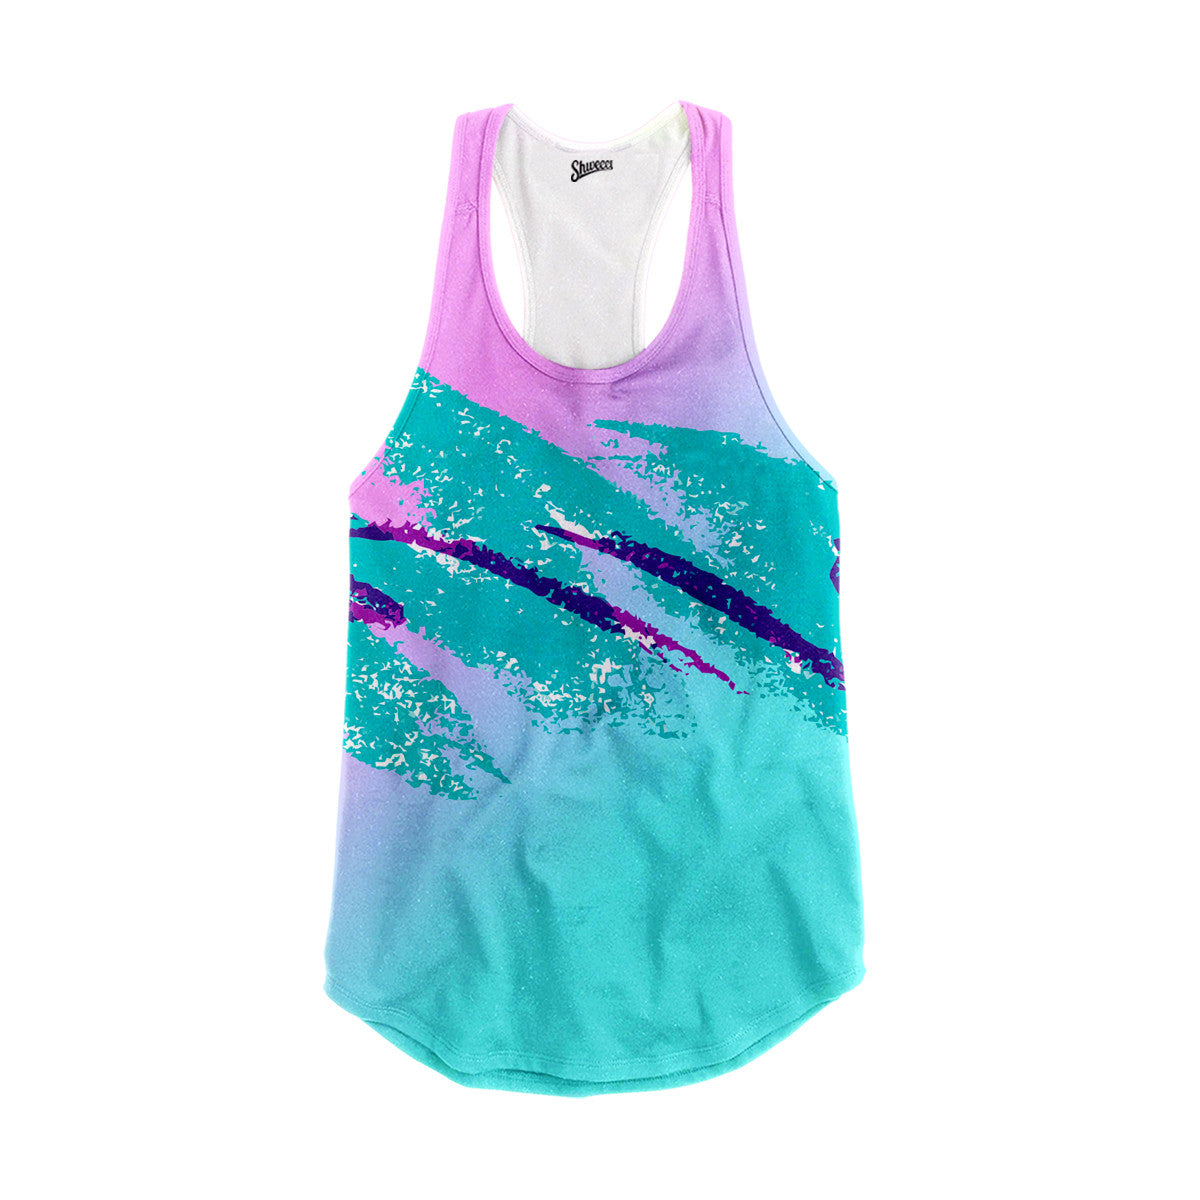 Jazz Paper Cup Racerback Tank Top - Shweeet